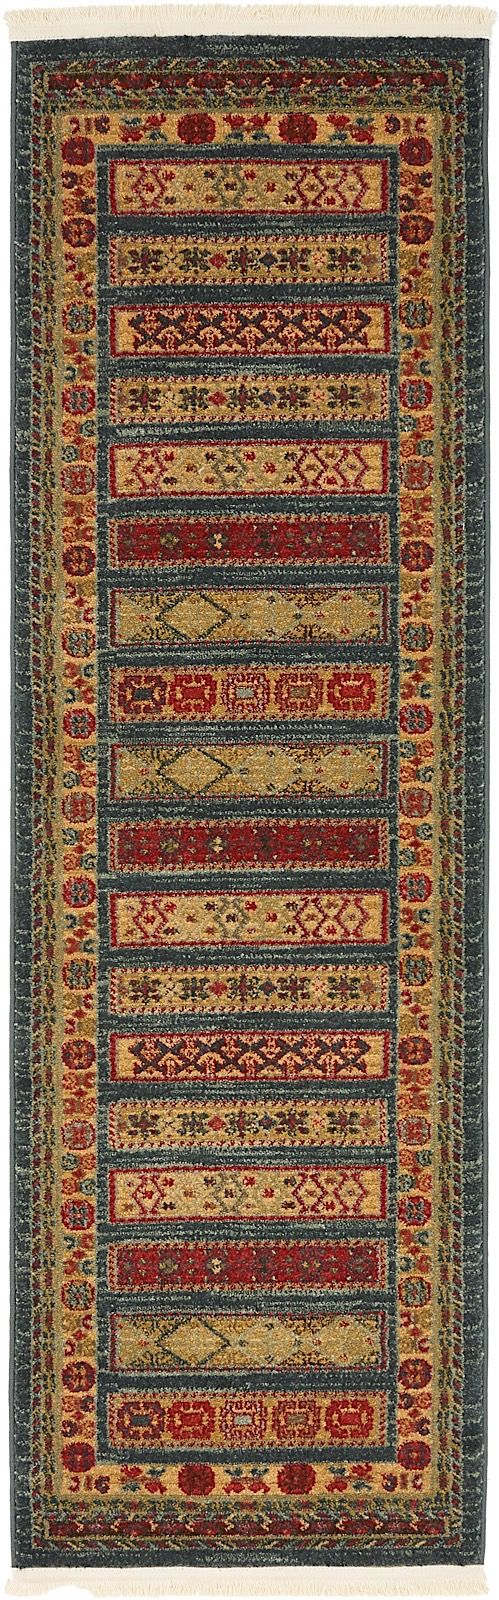 rugpal frederica contemporary area rug collection